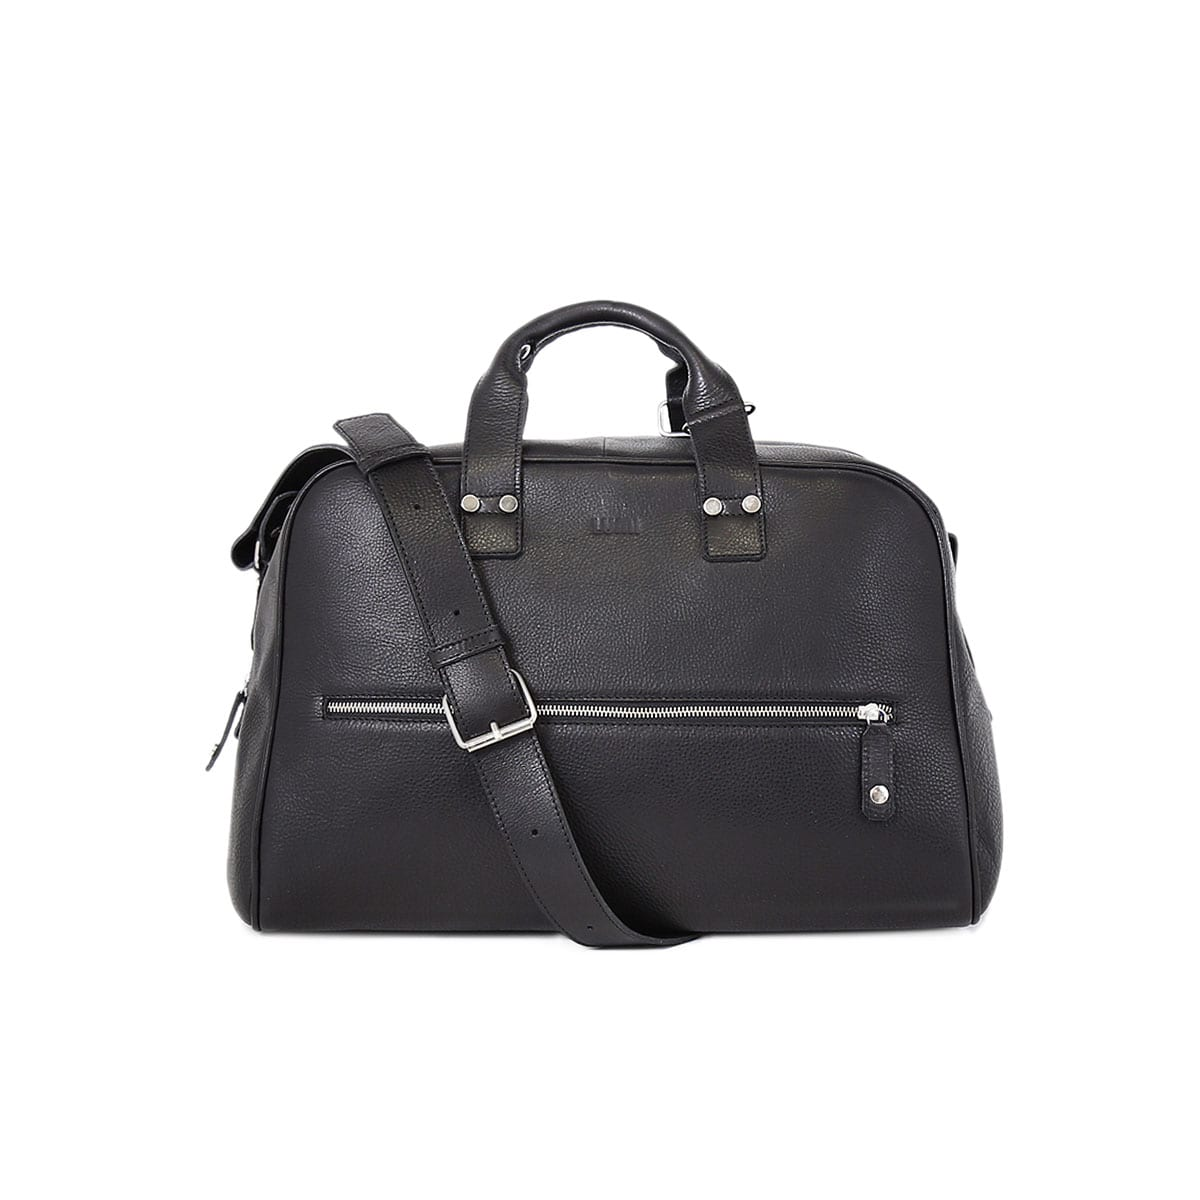 54ef3a11b46d LUMI Kristian Weekender Bag in black. This roomy and handsome weekender bag  fits all you